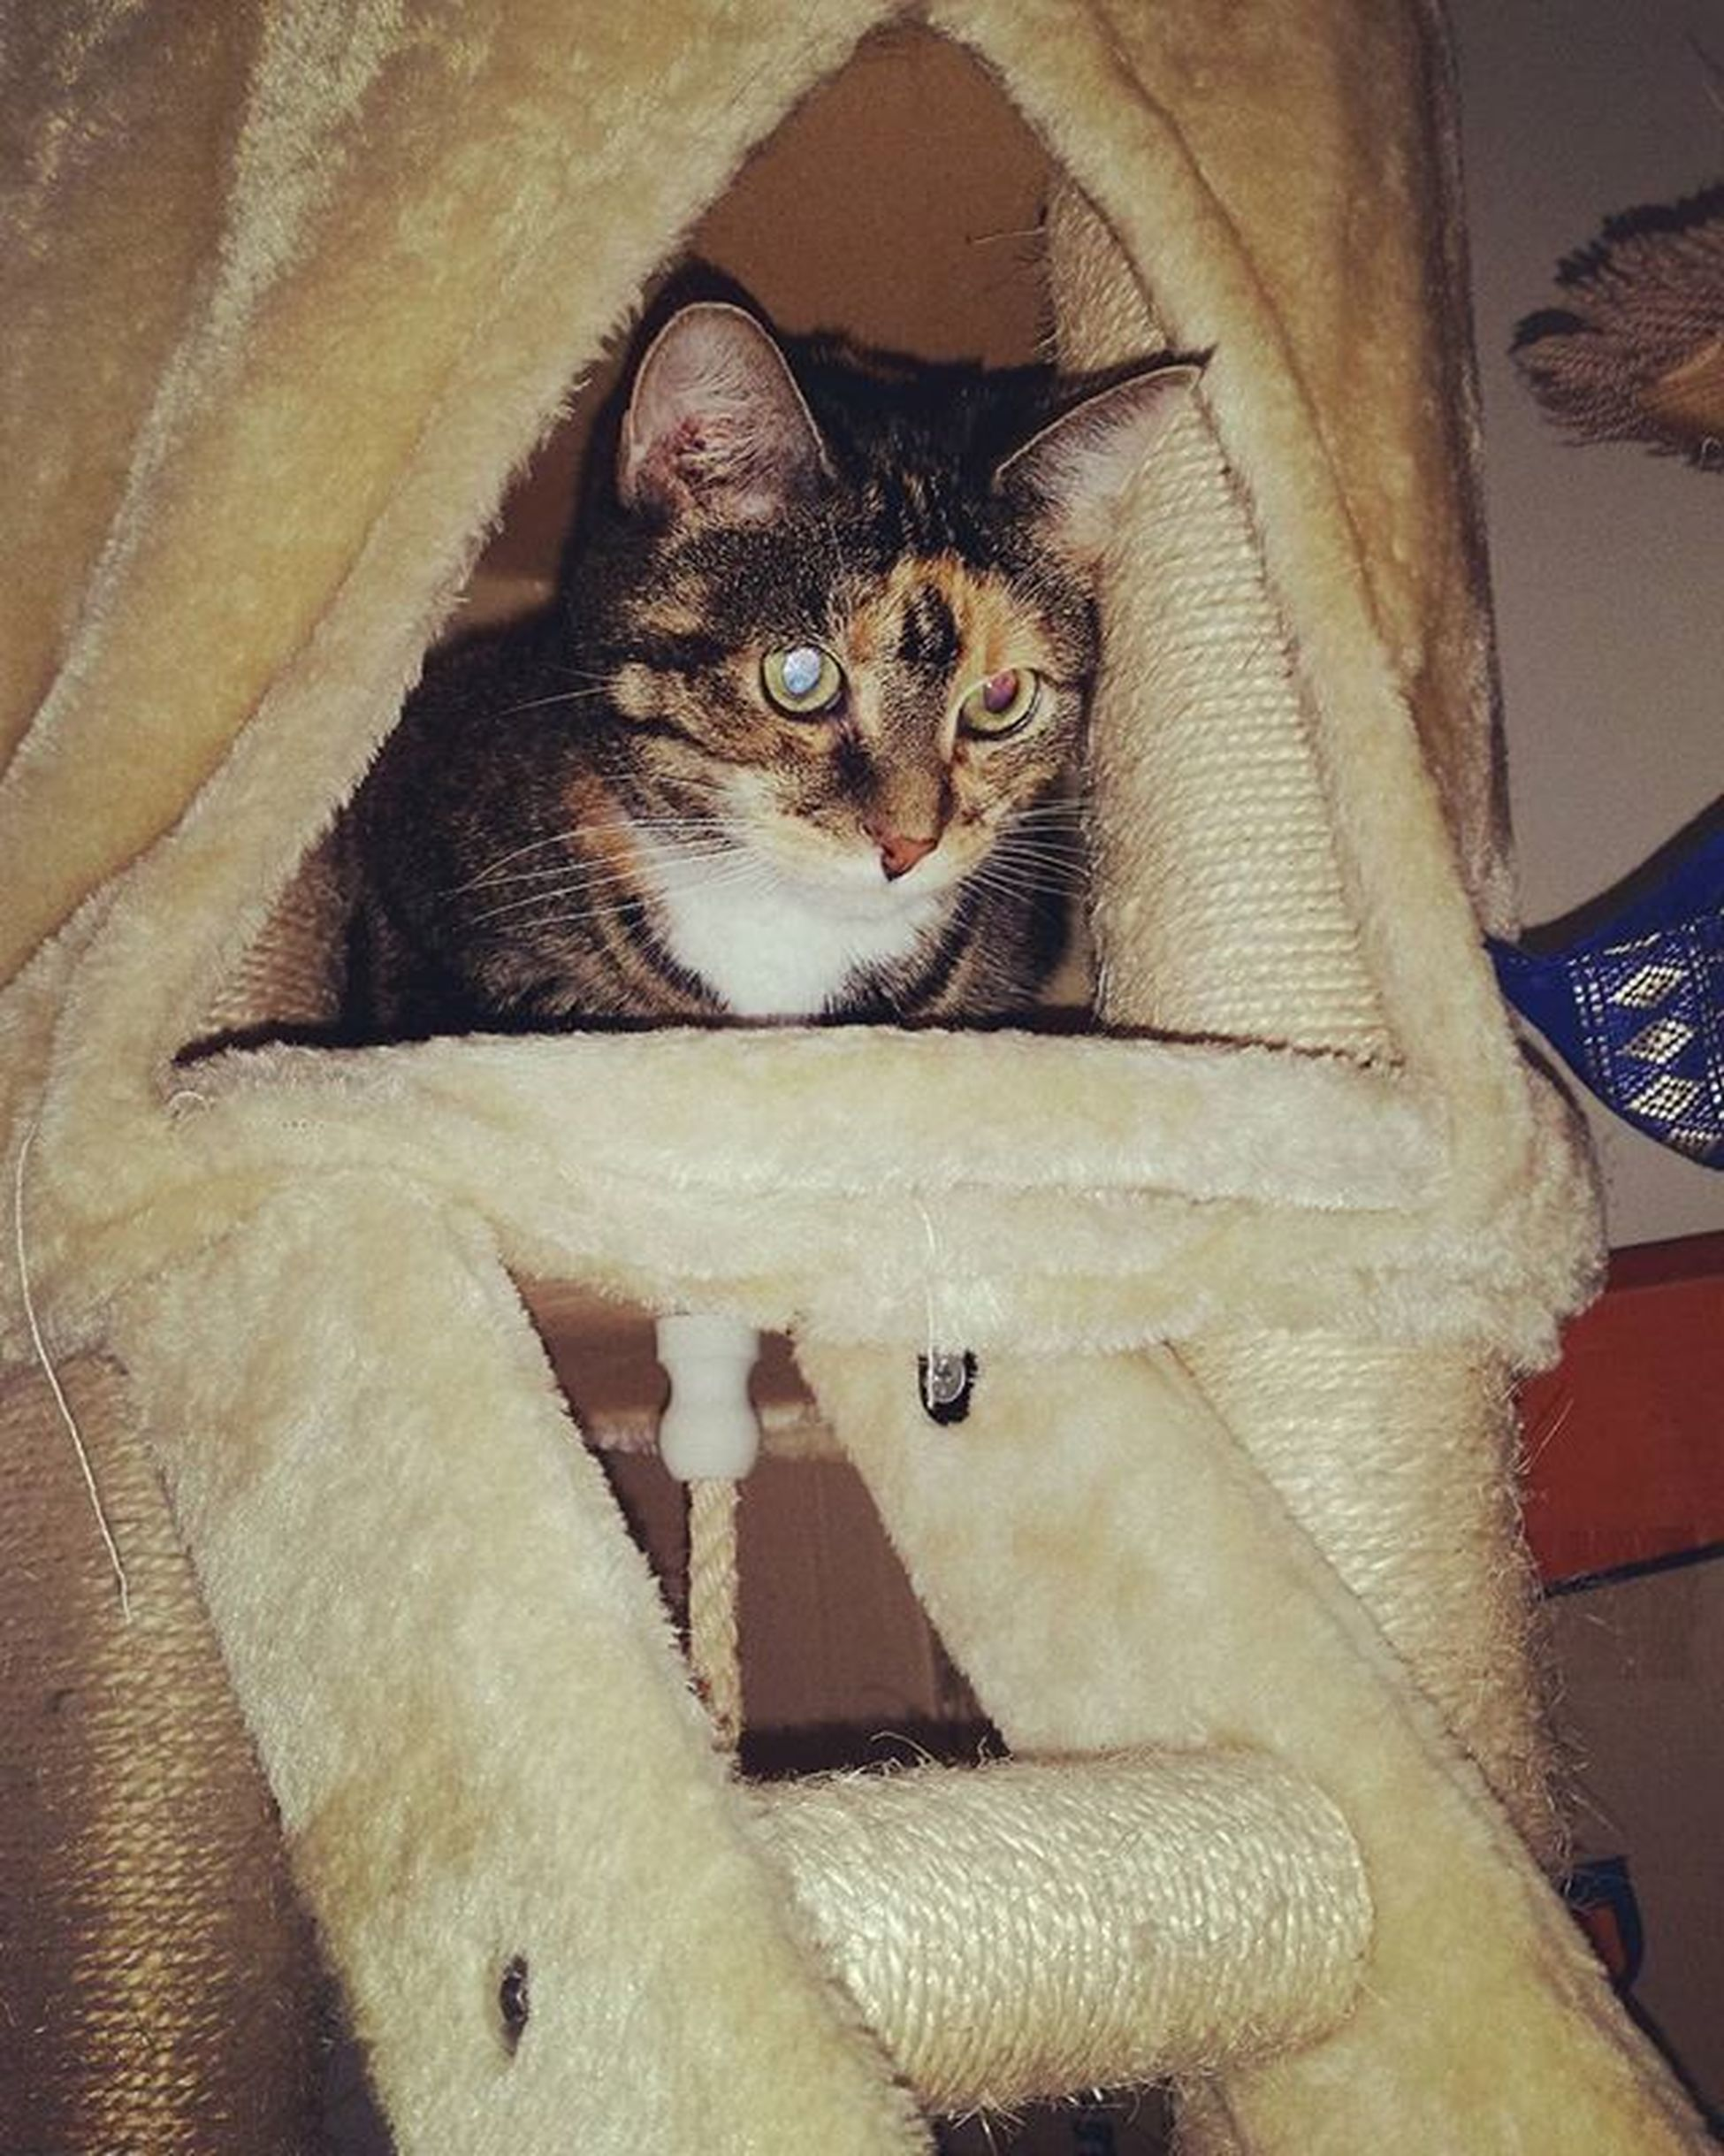 She wasn't happy to be put in there but she ended up sleeping for a bit anyway. Lol Australia Australianliving Home Happy Cat Catsofinstagram Gabby  Selfie Catselfie Socute Mylife Catscratcher Cattower